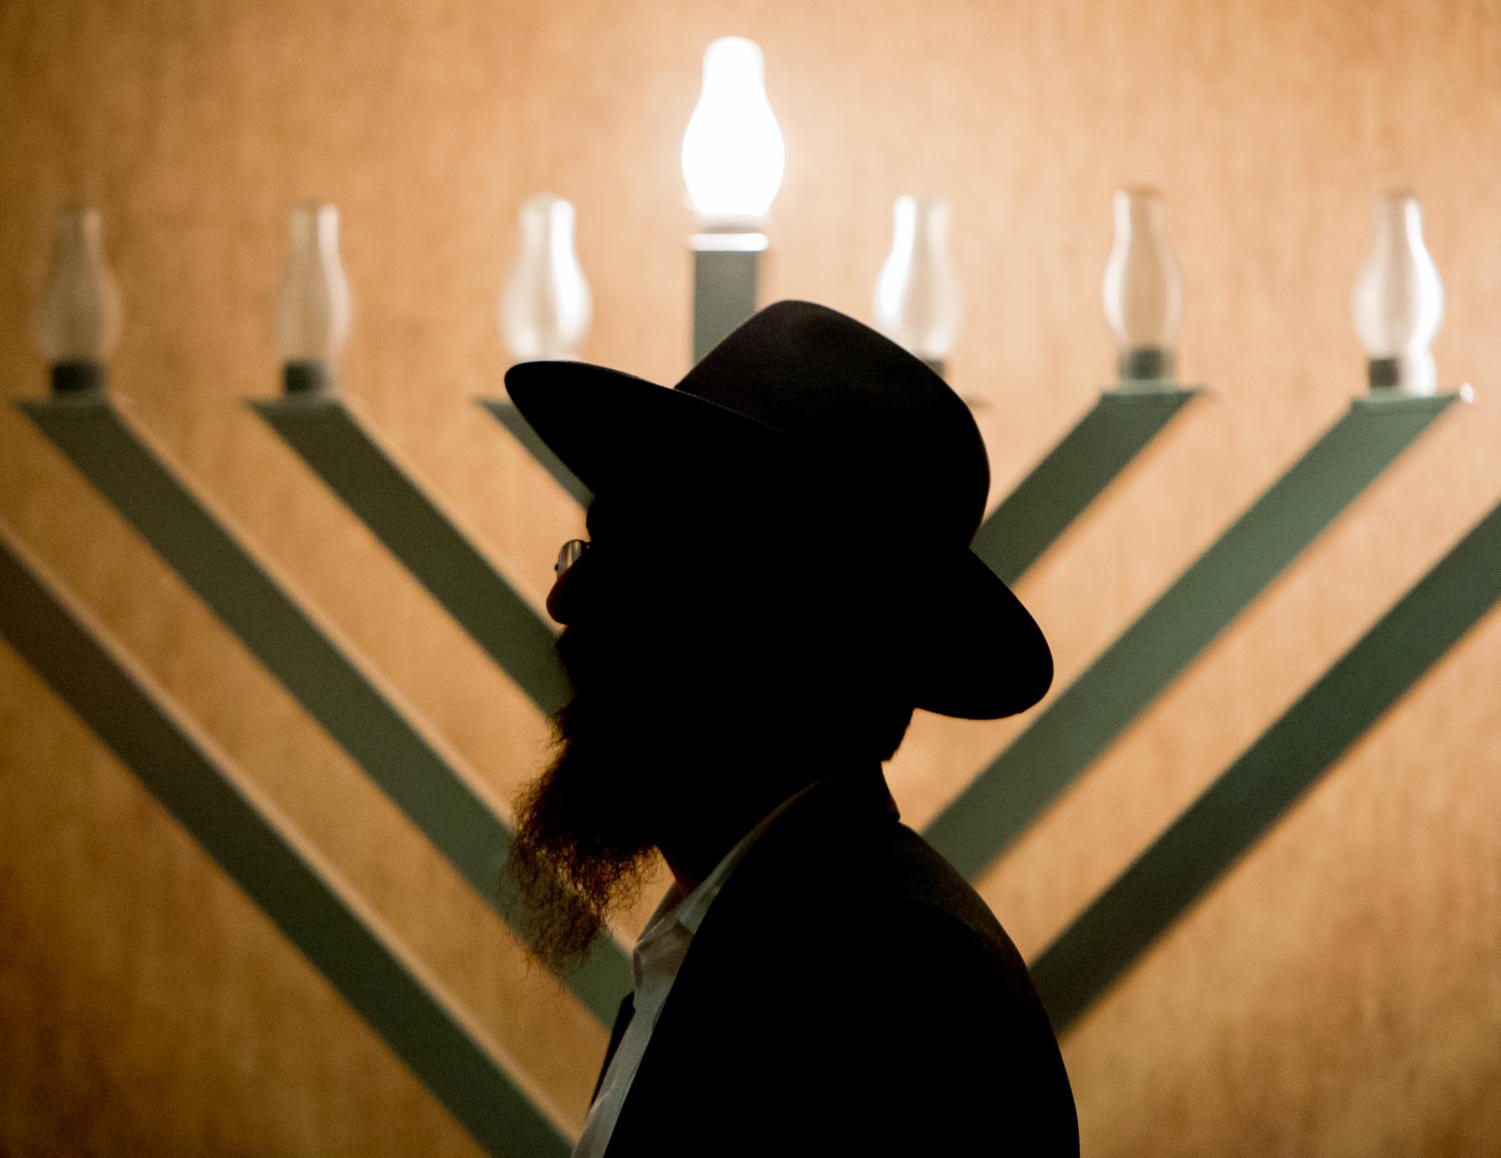 Rabbi Mendel Scheiman delivers remarks after lighting an electric menorah on the first day of Hanukkah Tuesday, Dec. 12, 2017, at the Old Main Lounge in SIU's Student Center. (Brian Muñoz | @BrianMMunoz)